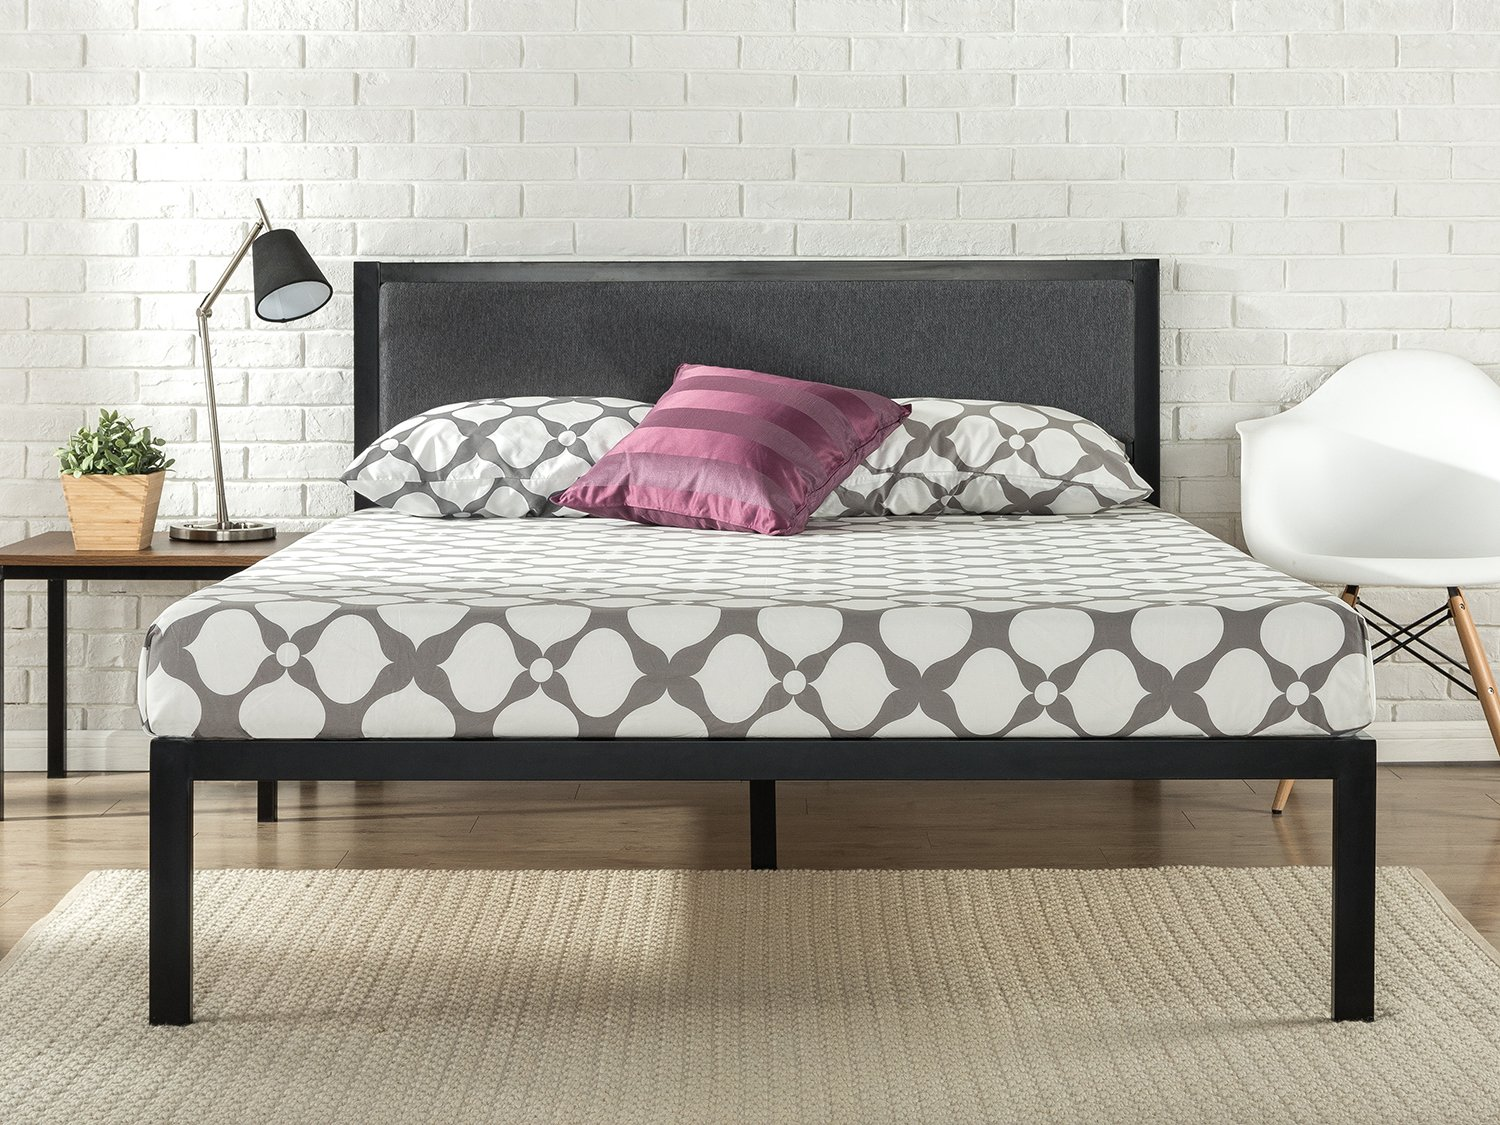 Metal Bed Frame with Upholstered Headboard / Mattress Foundation / Wood Slat Support, Full